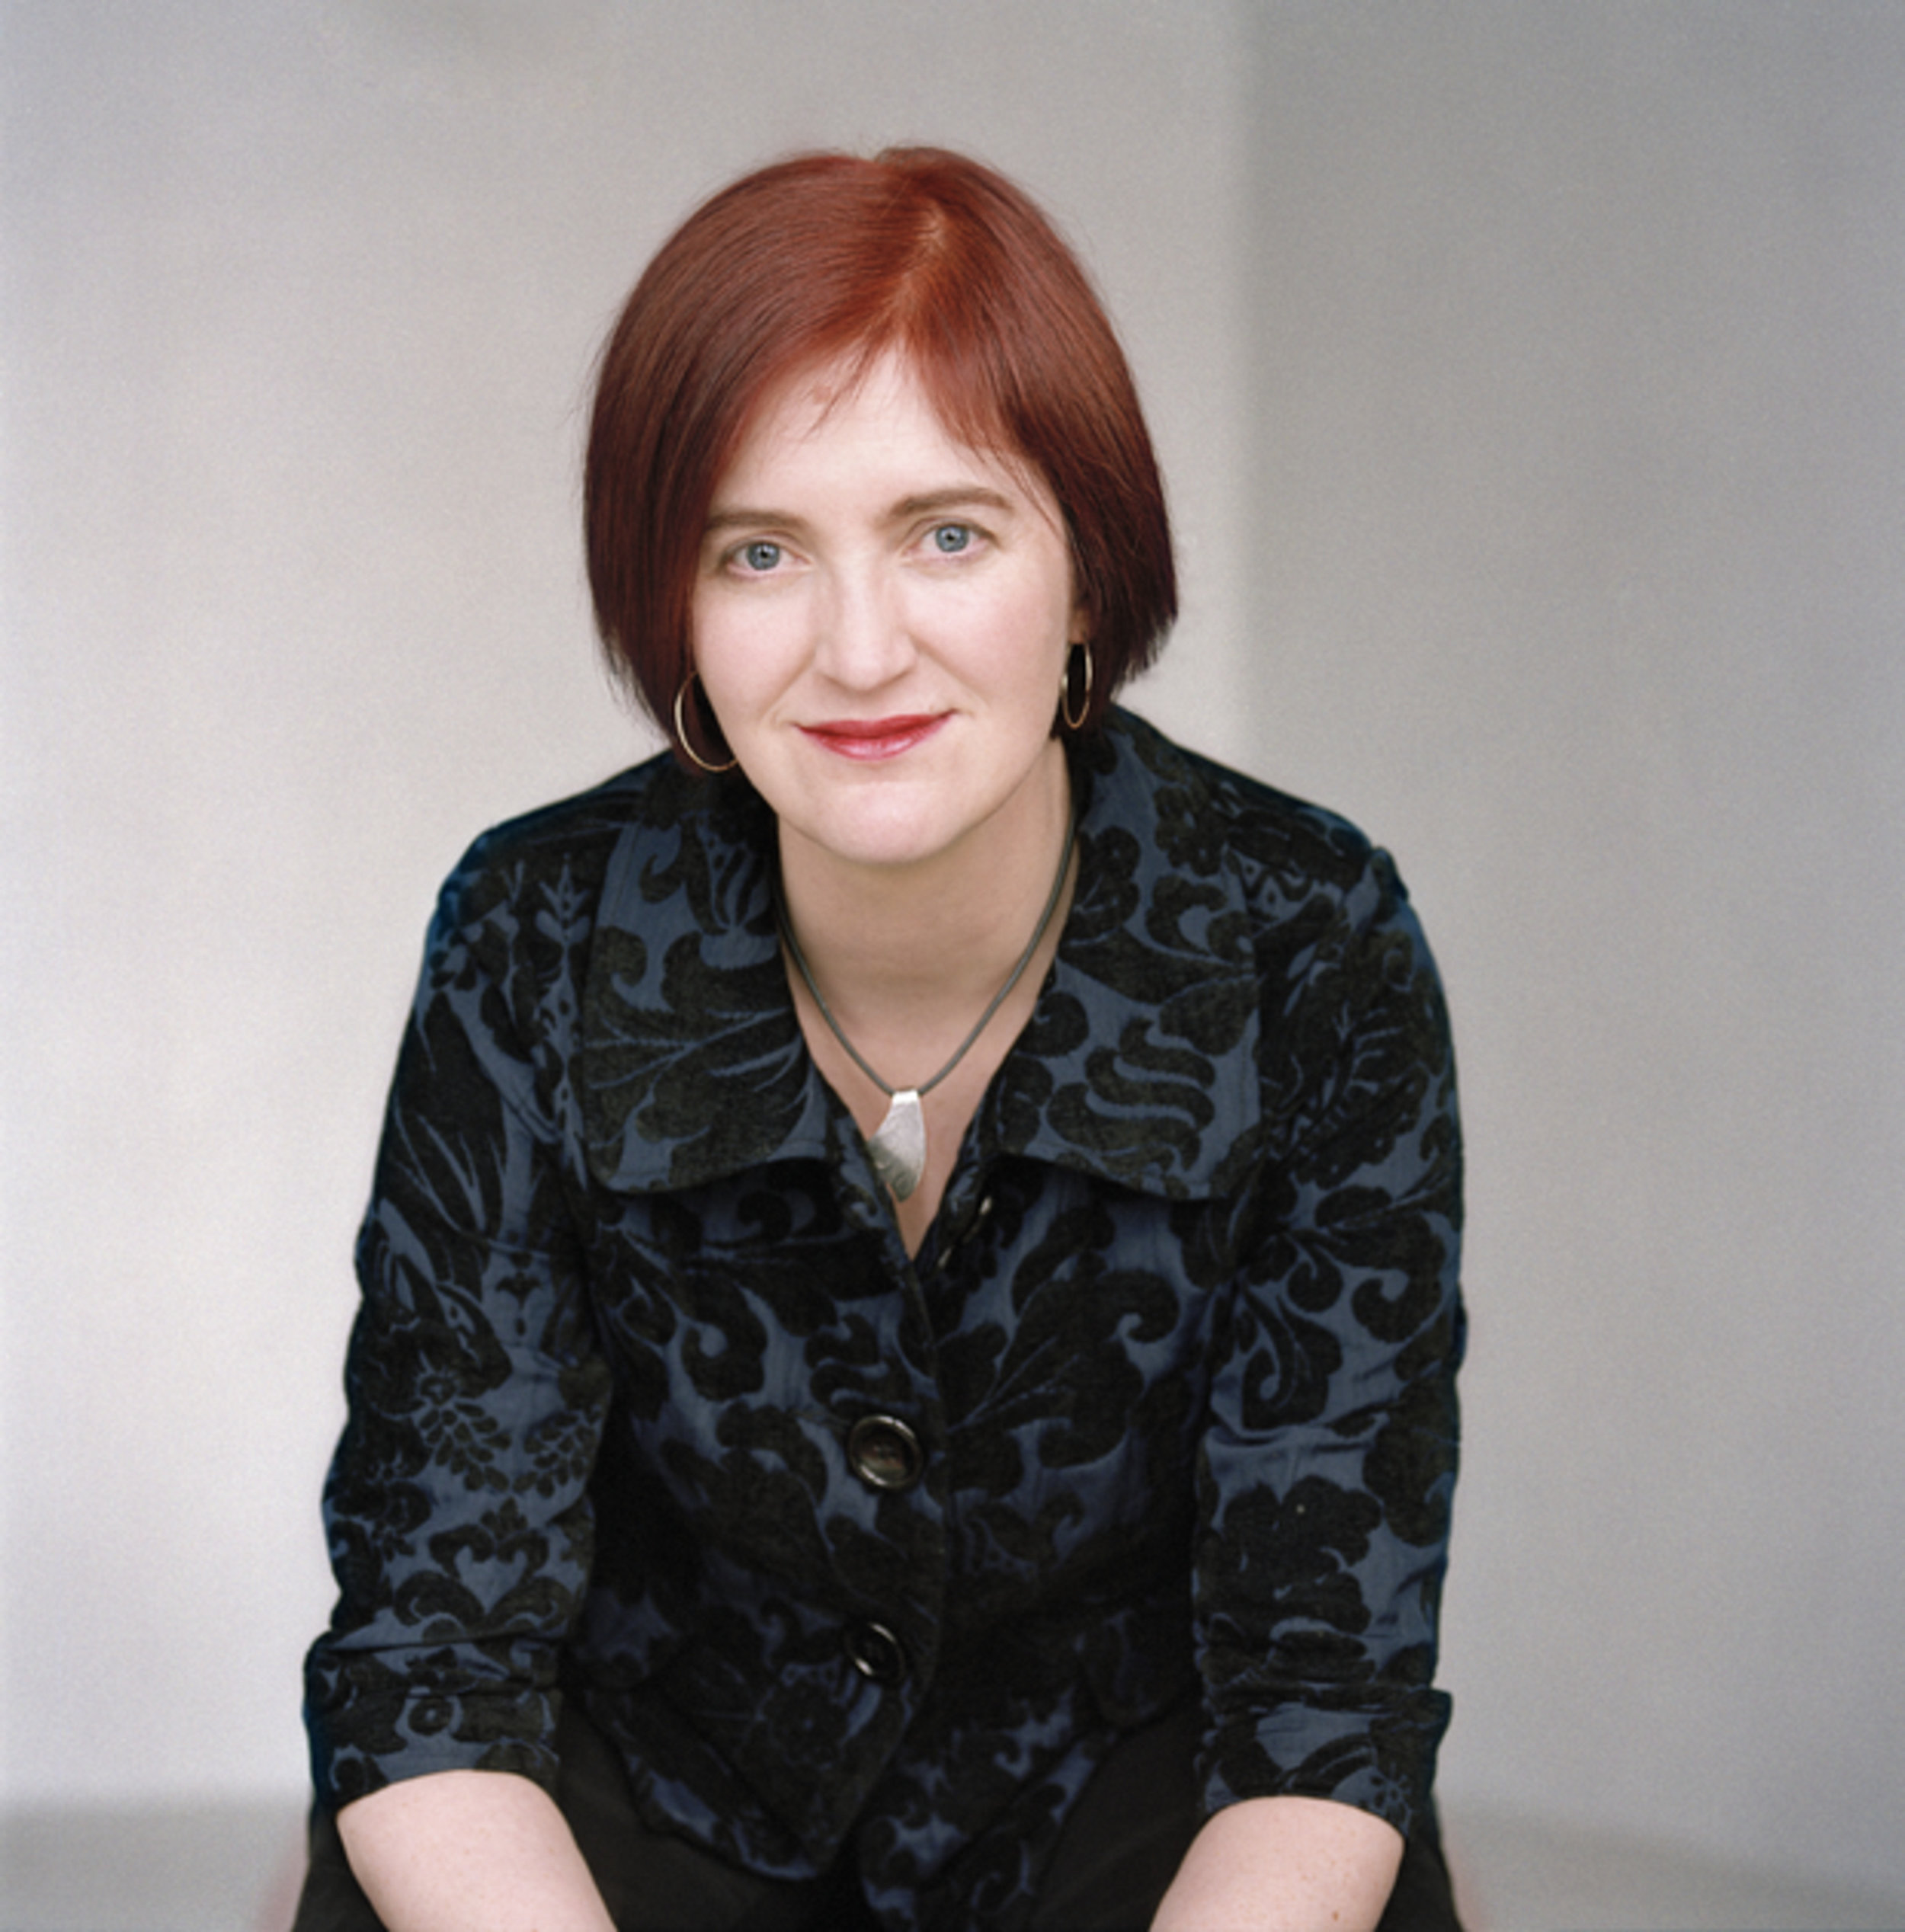 An image of Emma Donoghue.